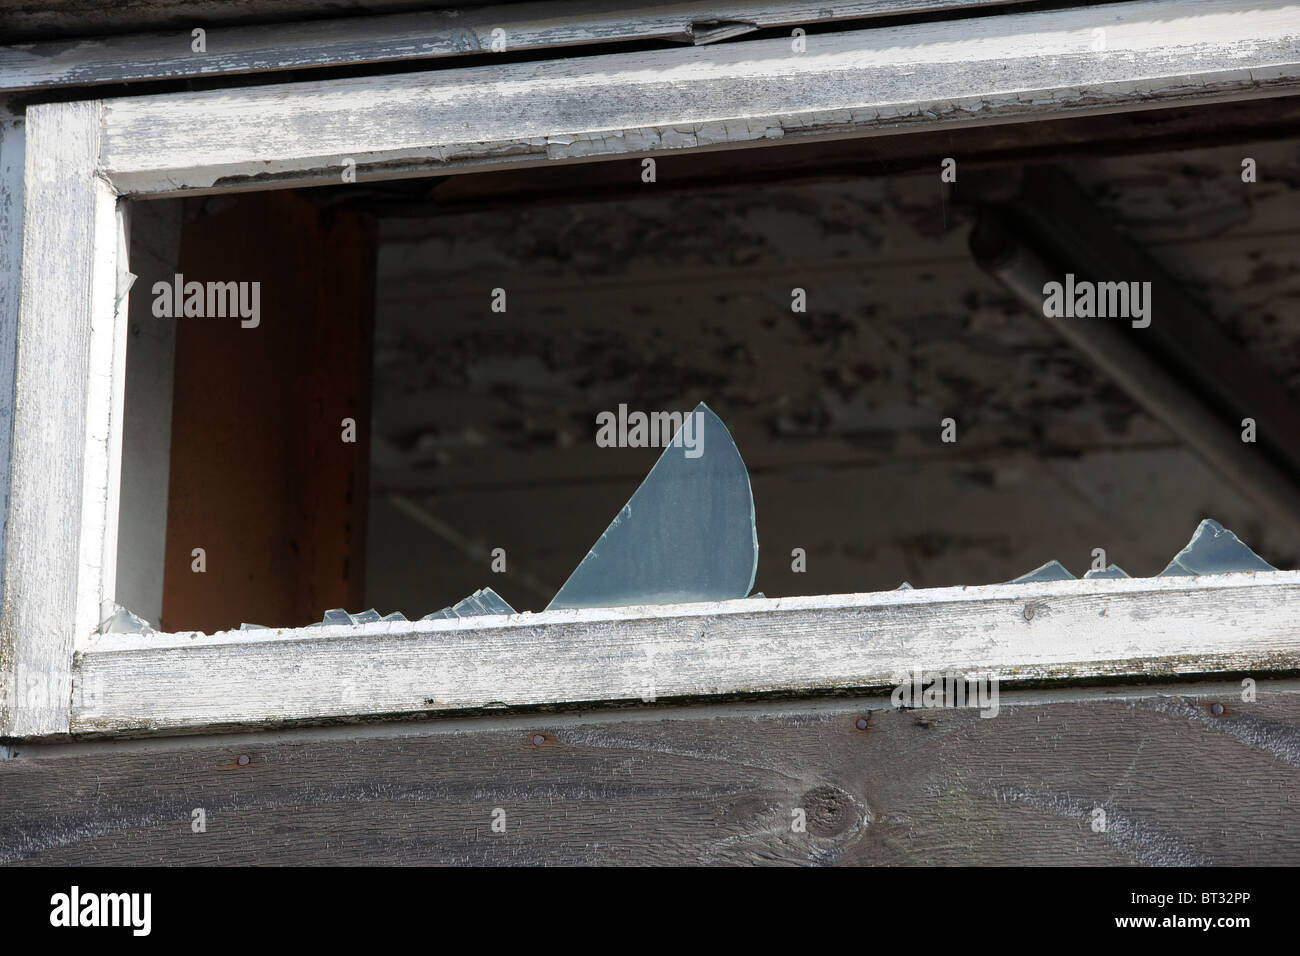 Broken window with glass fragments remaining. - Stock Image